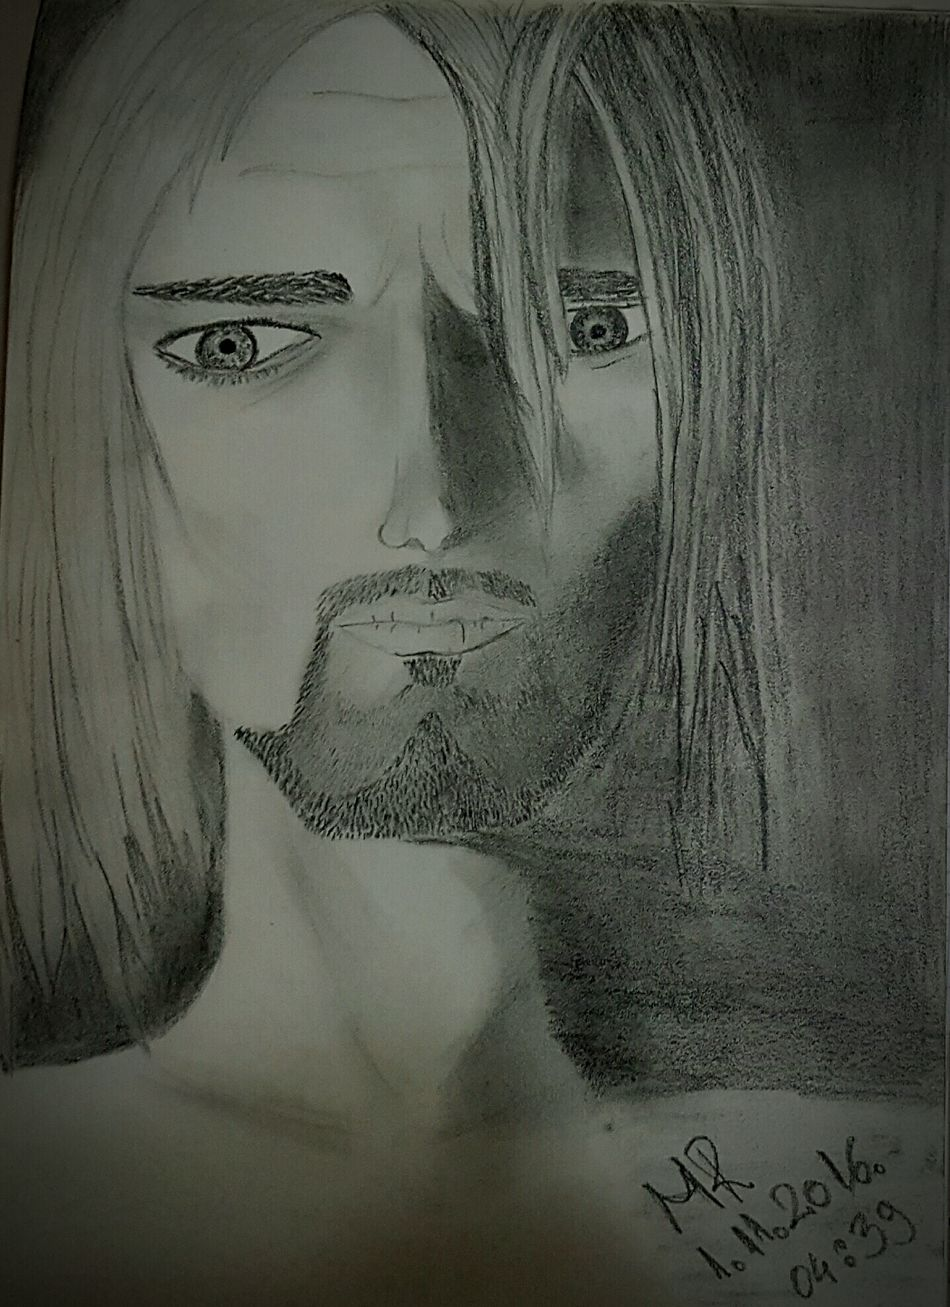 One Person Art Drawing ✏ Draw Drawn By Me Art Gallery Artistic Photography Drawing Time Art, Drawing, Creativity Love Drawing ❤